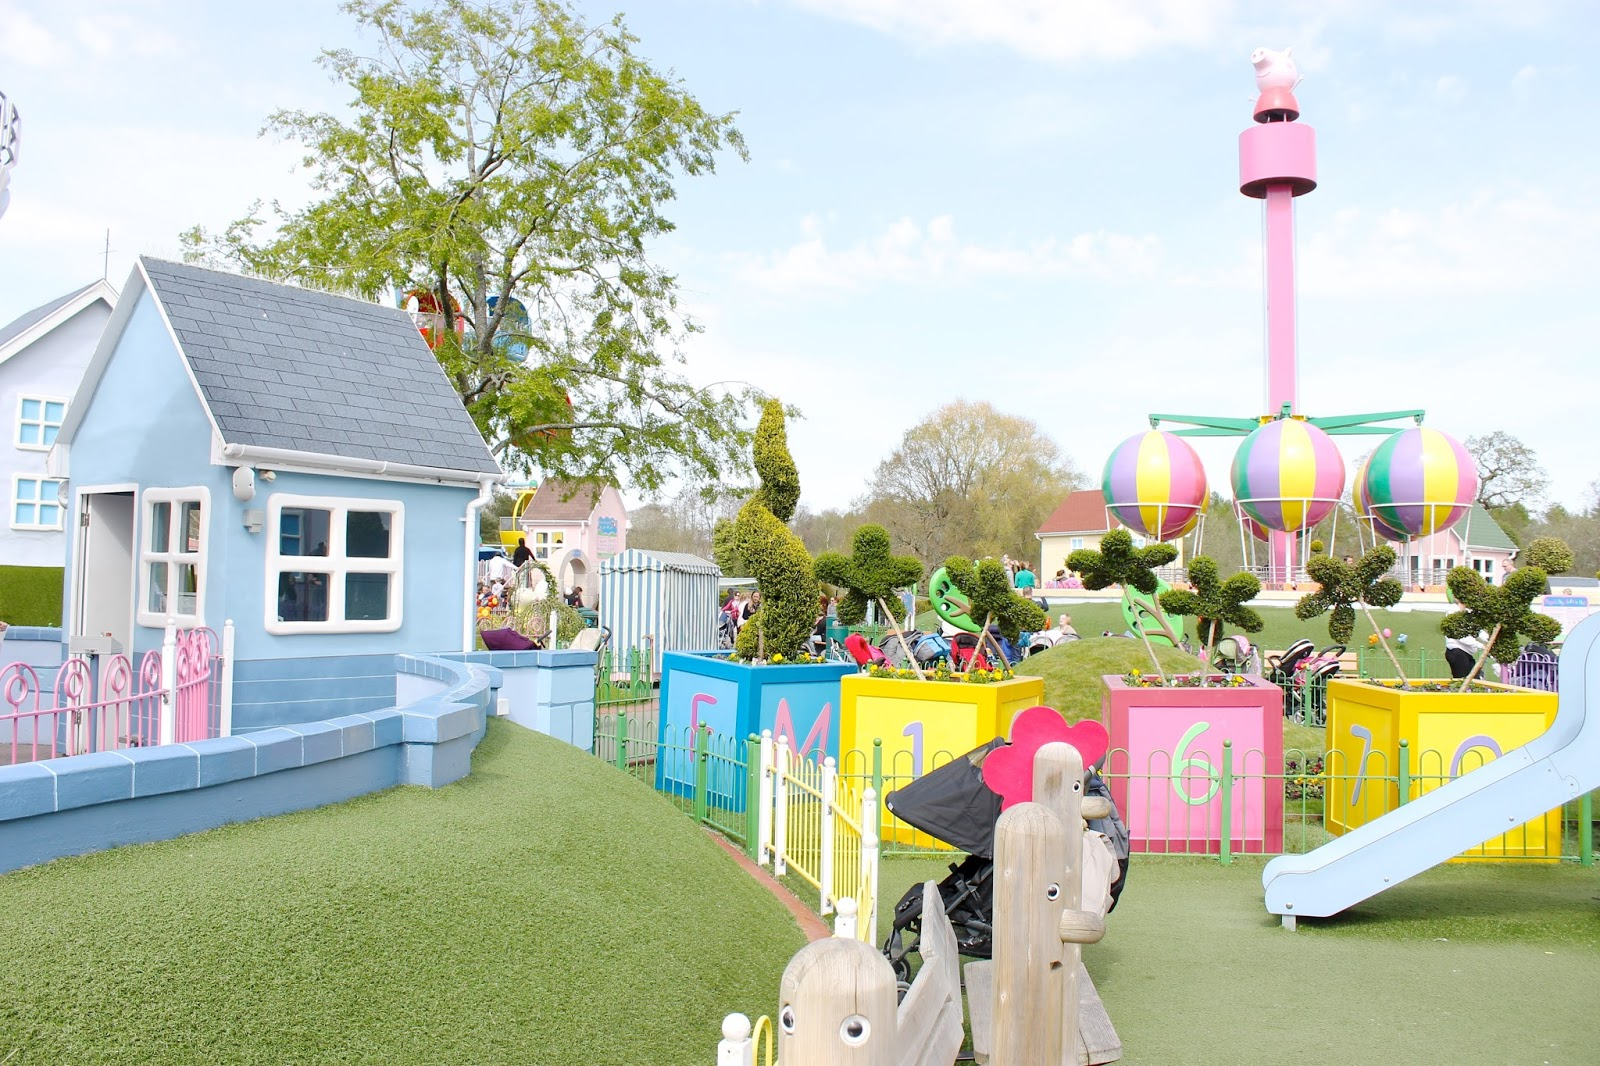 peppa pig world review, paultons park review